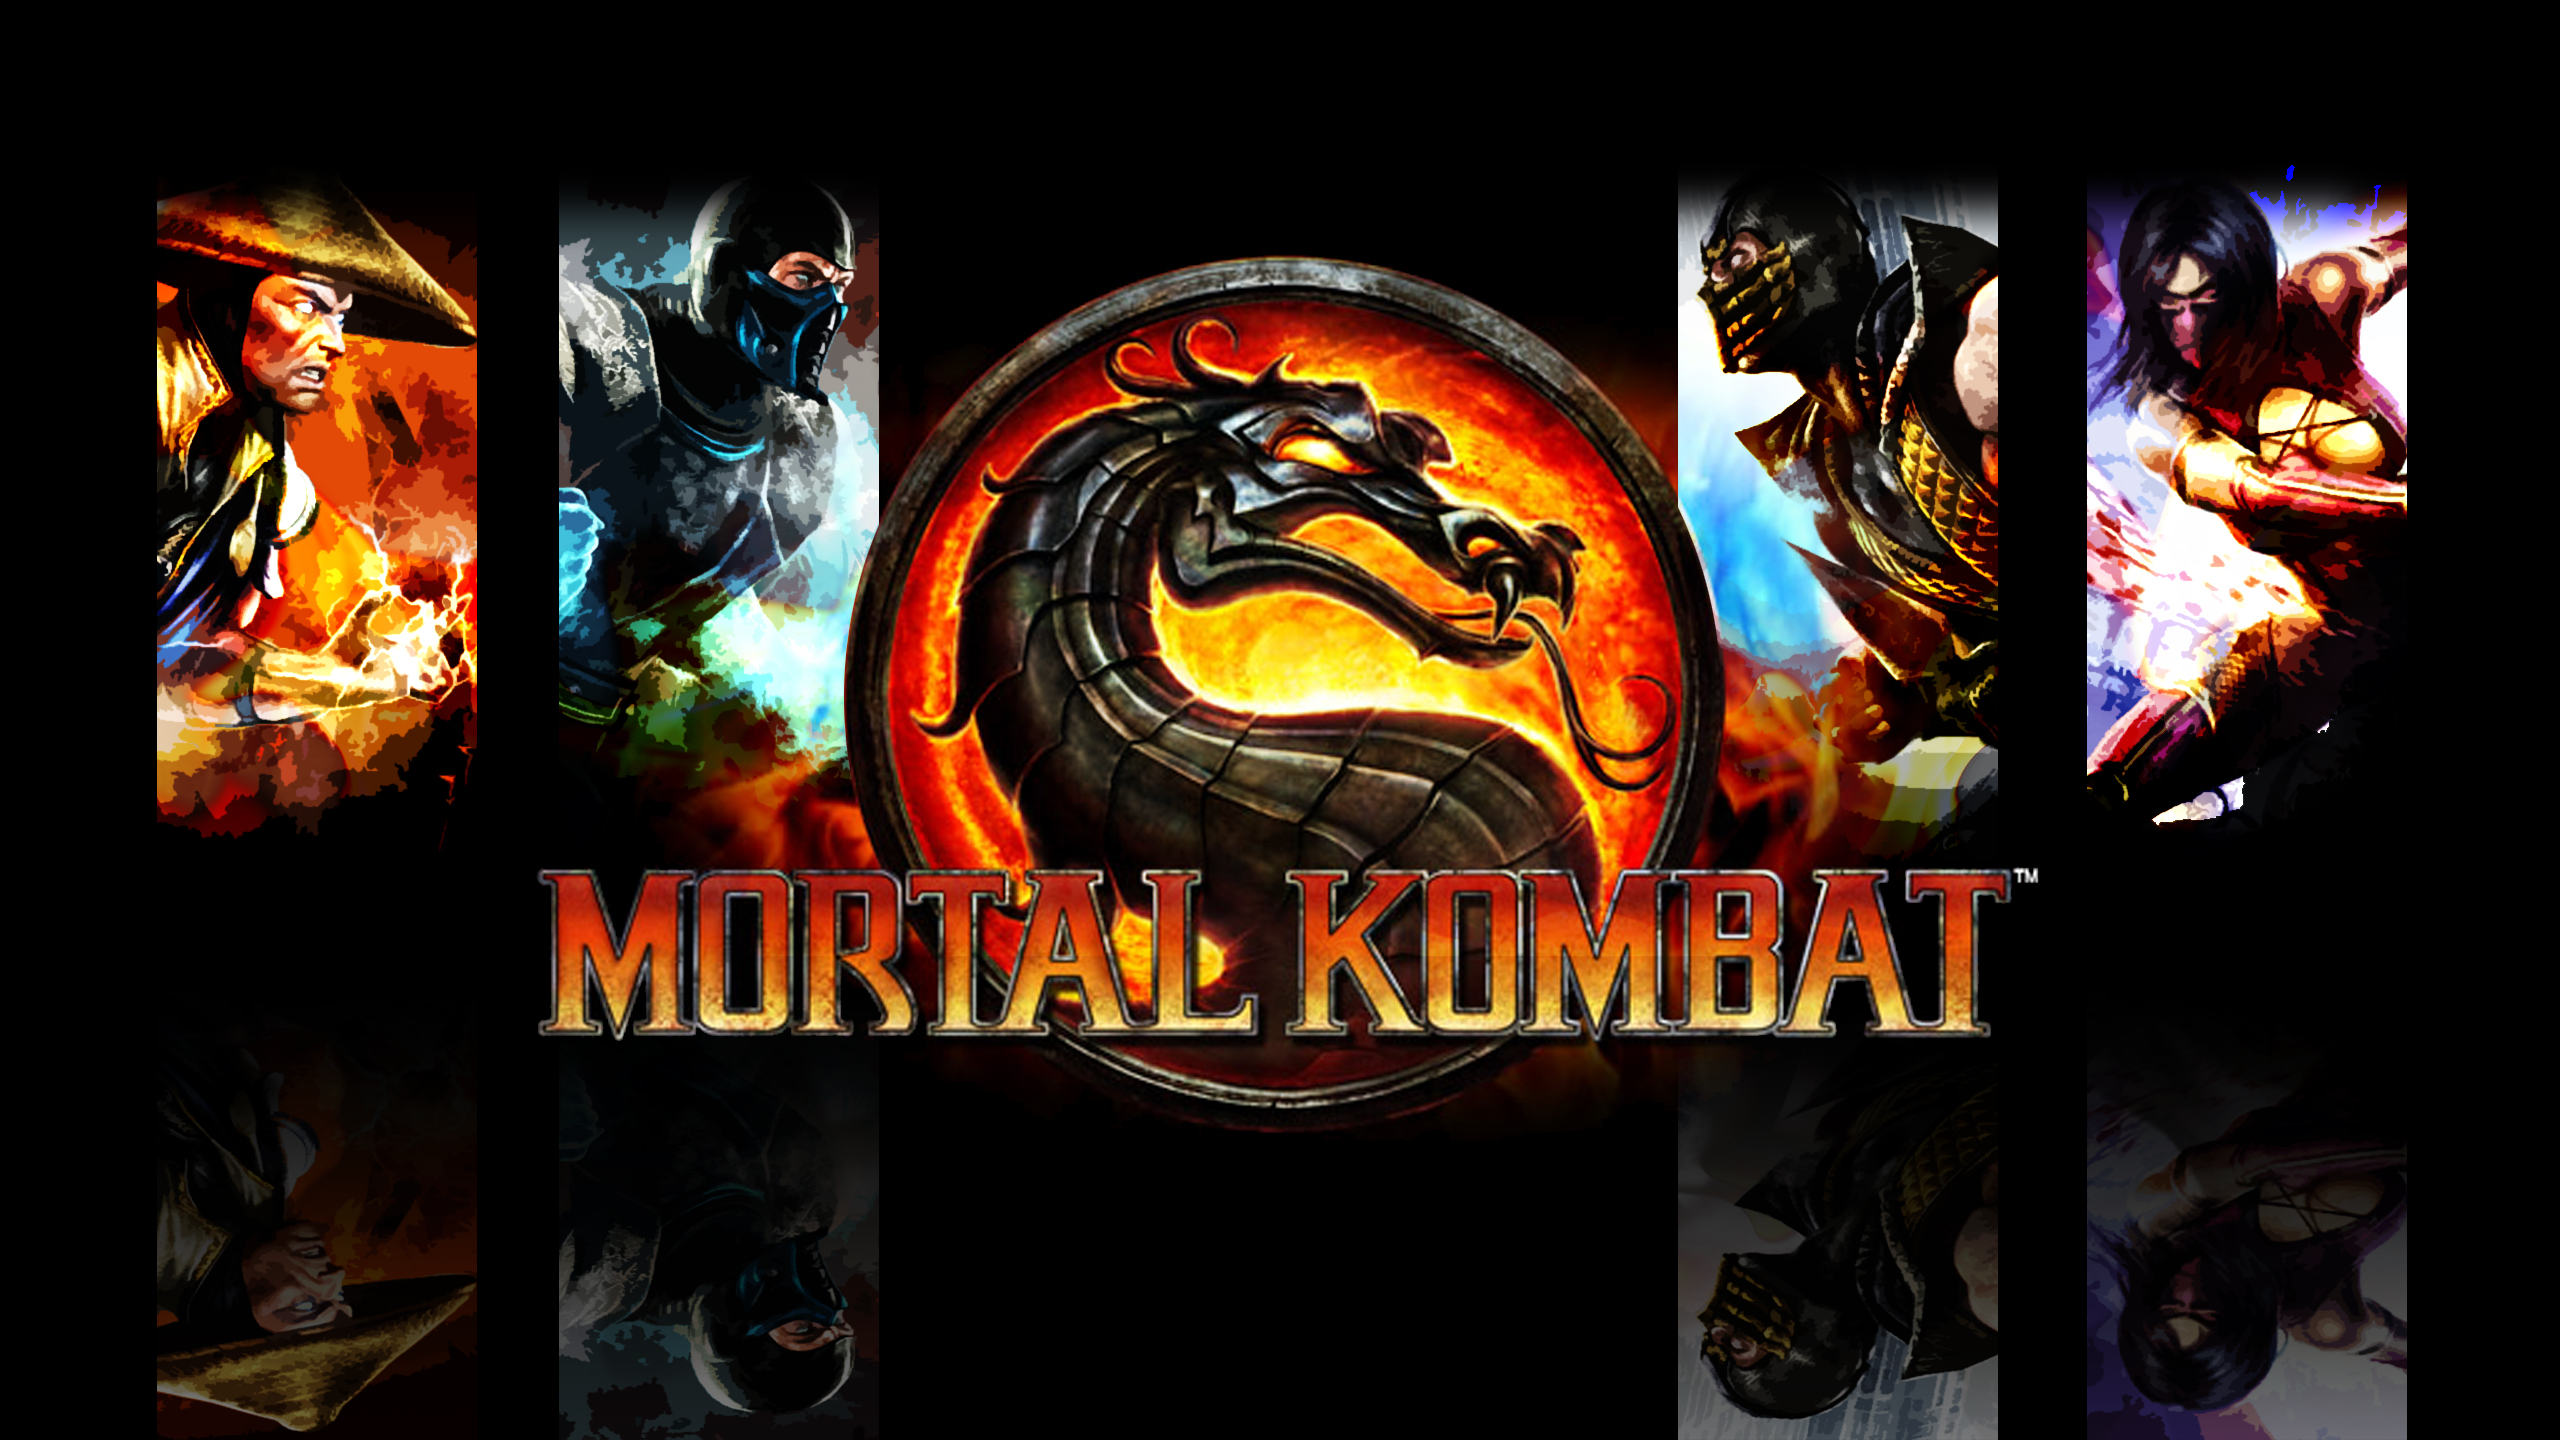 Free Mortal Kombat 9 Wallpaper